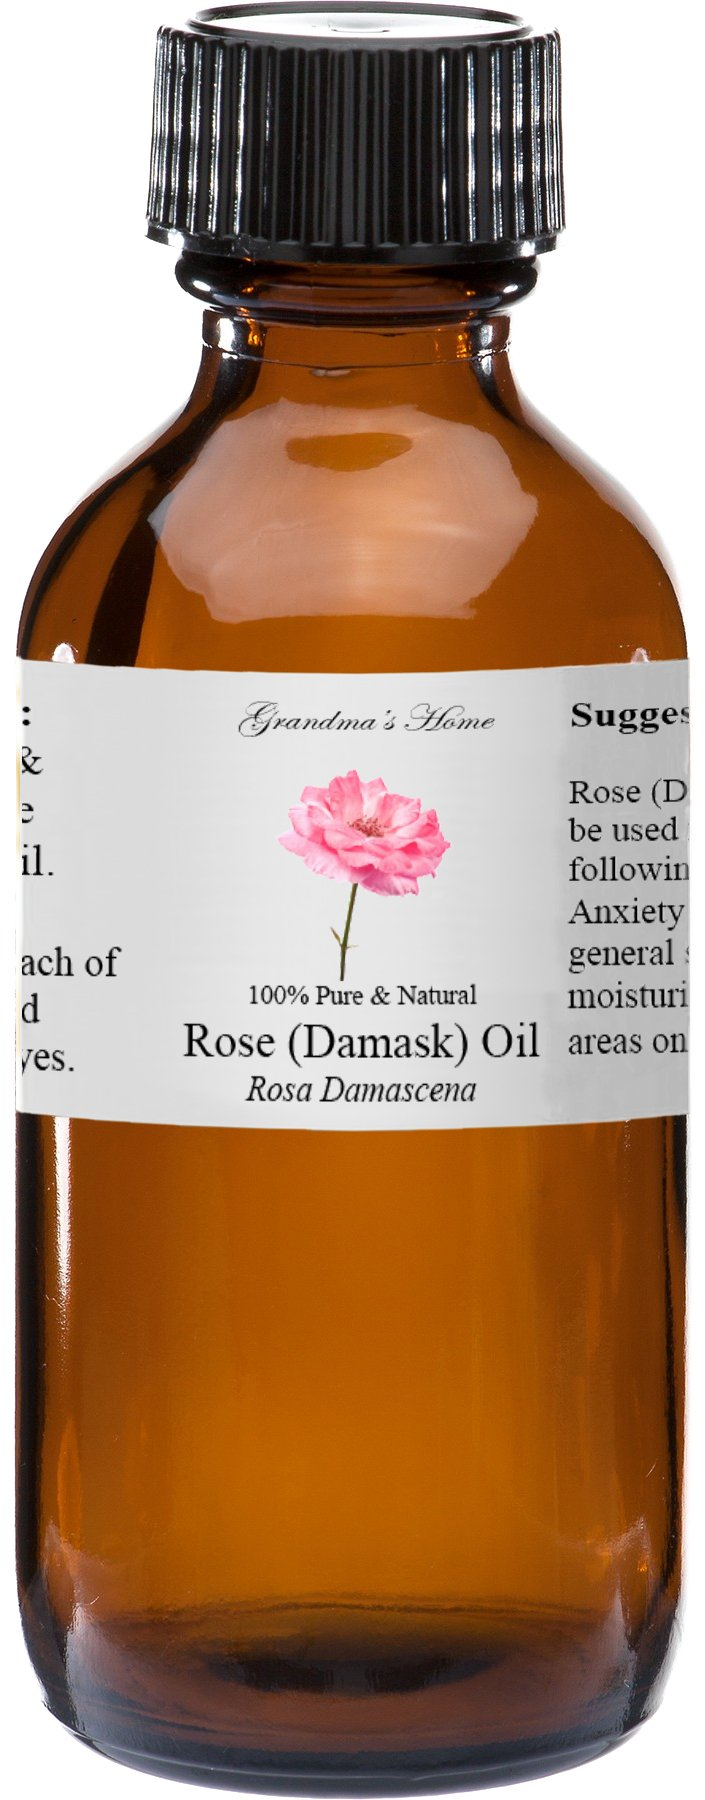 Rose Essential Oil - 2 fl oz -100% Pure and Natural - Therapeutic Grade - Grandma's Home by Grandma's Home